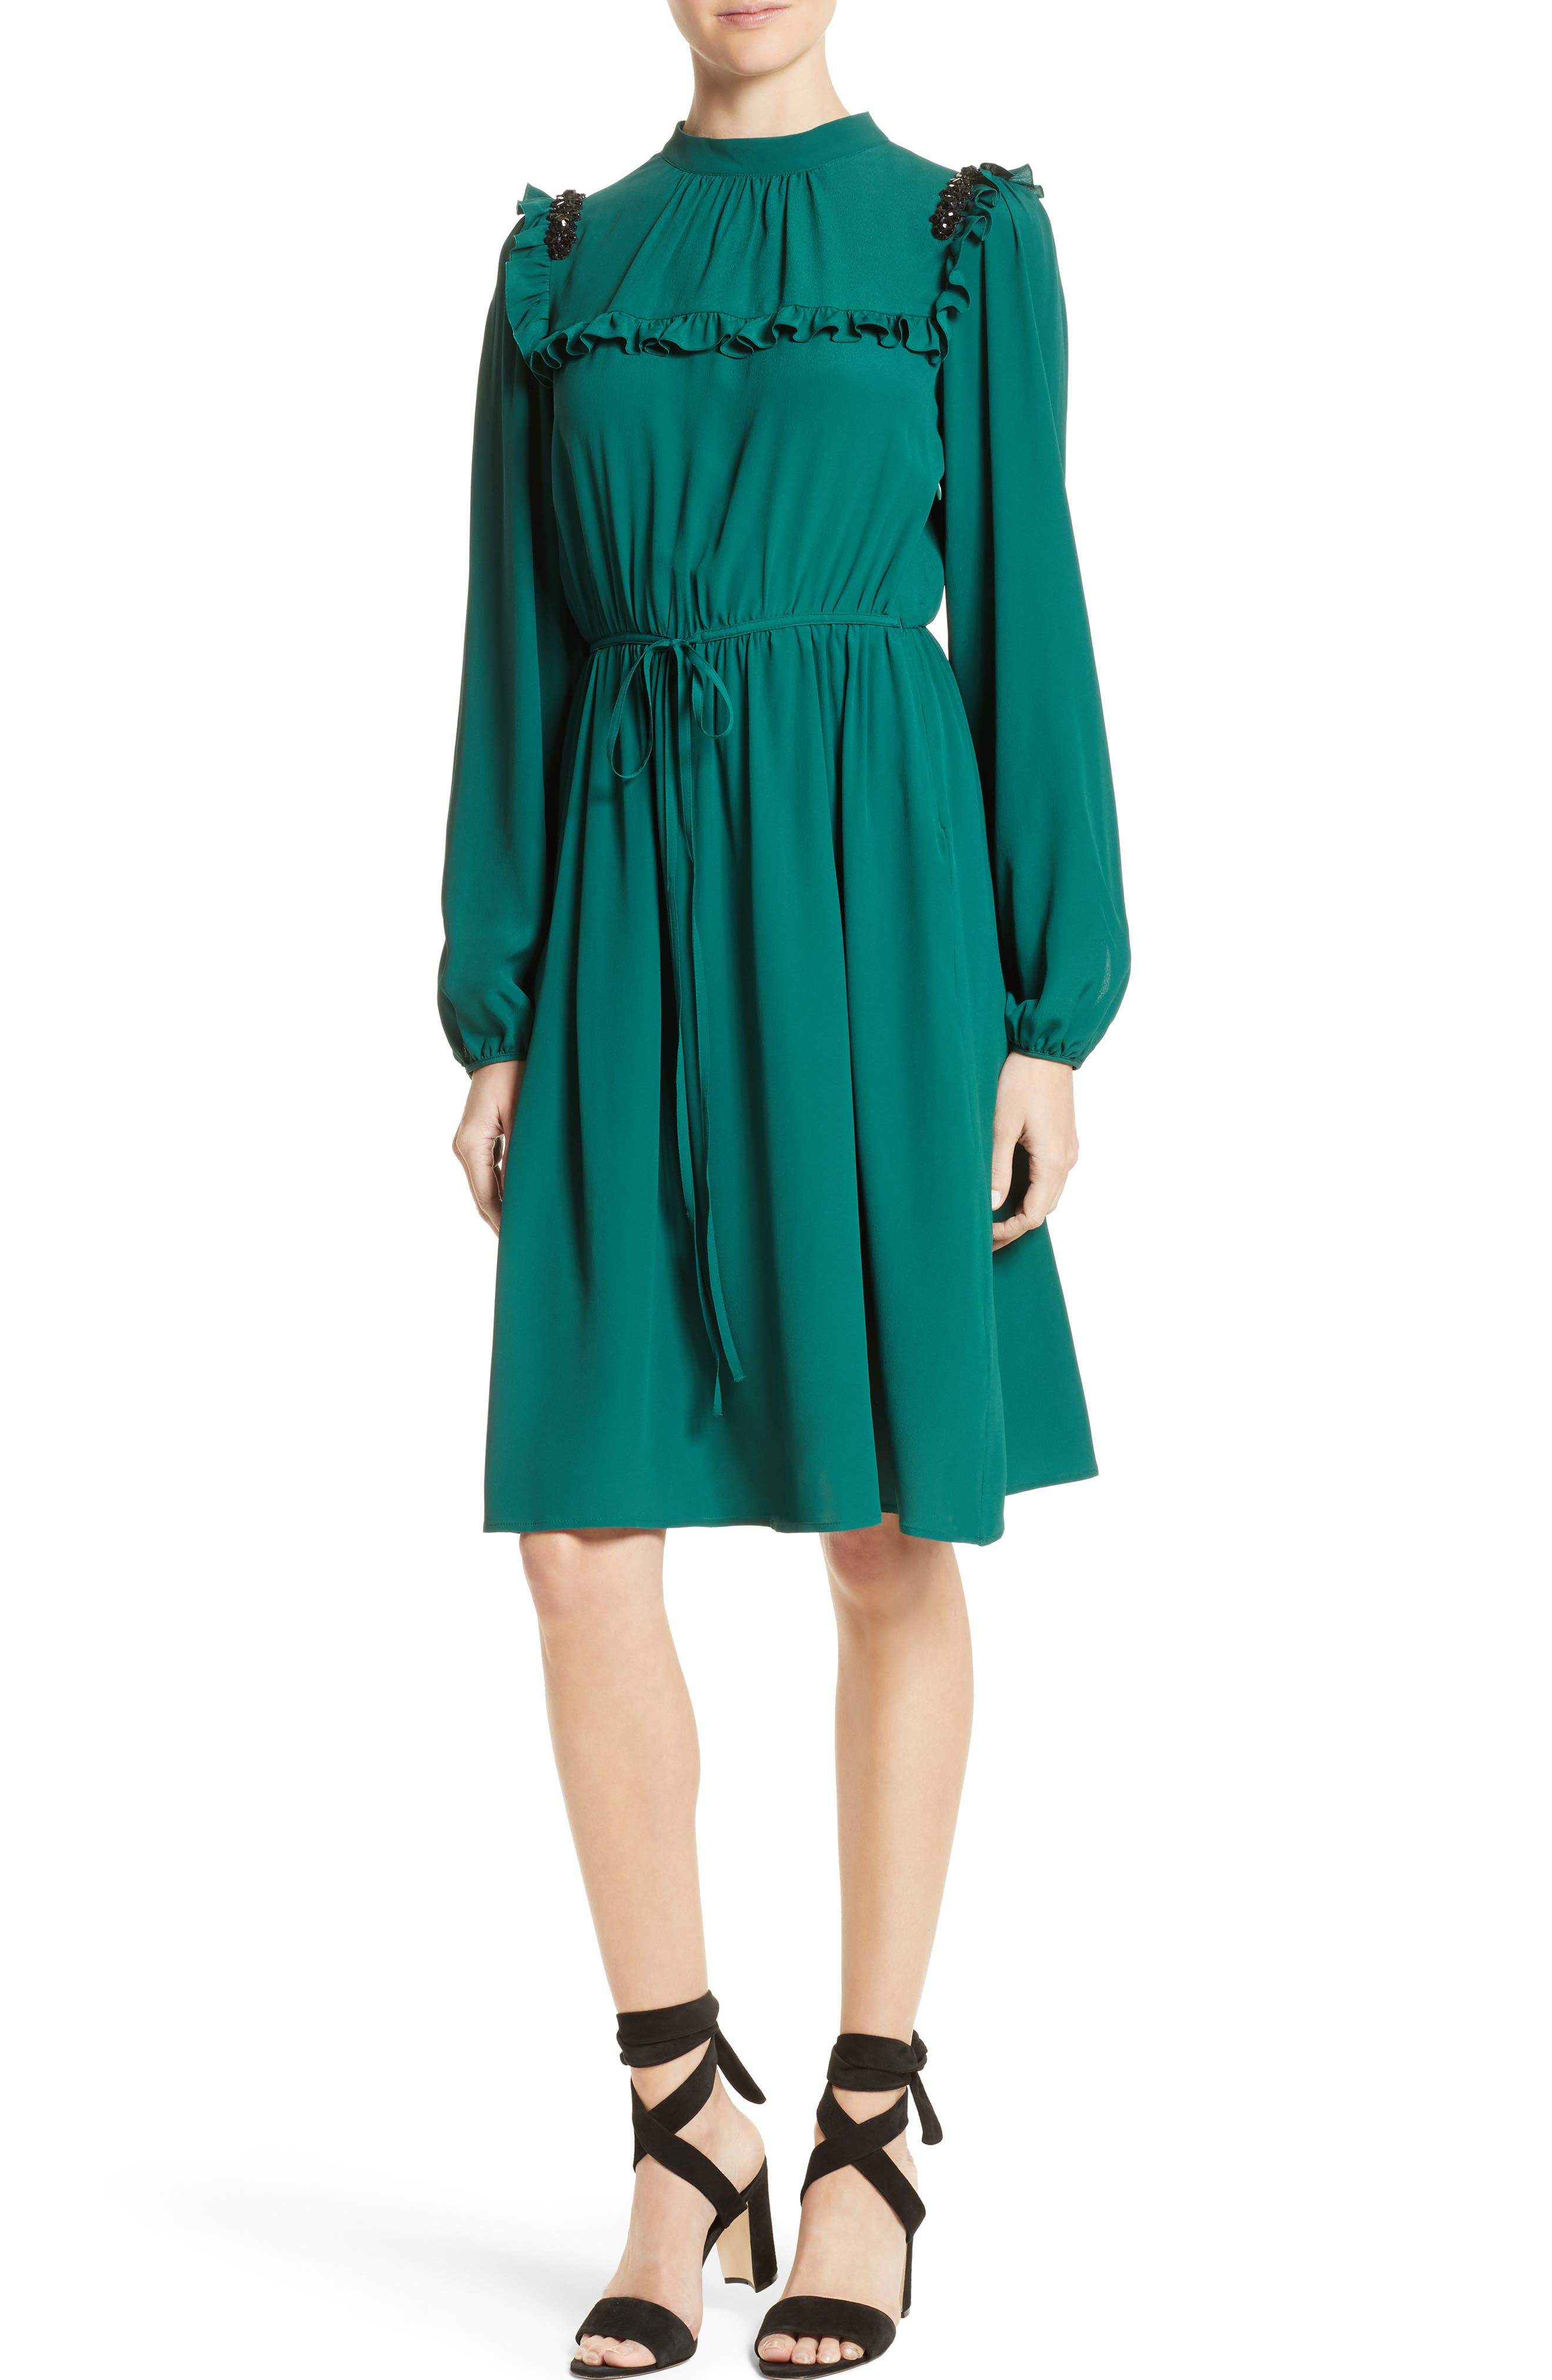 Crystal Embellished Ruffle Dress,                             Main thumbnail 1, color,                             Verde